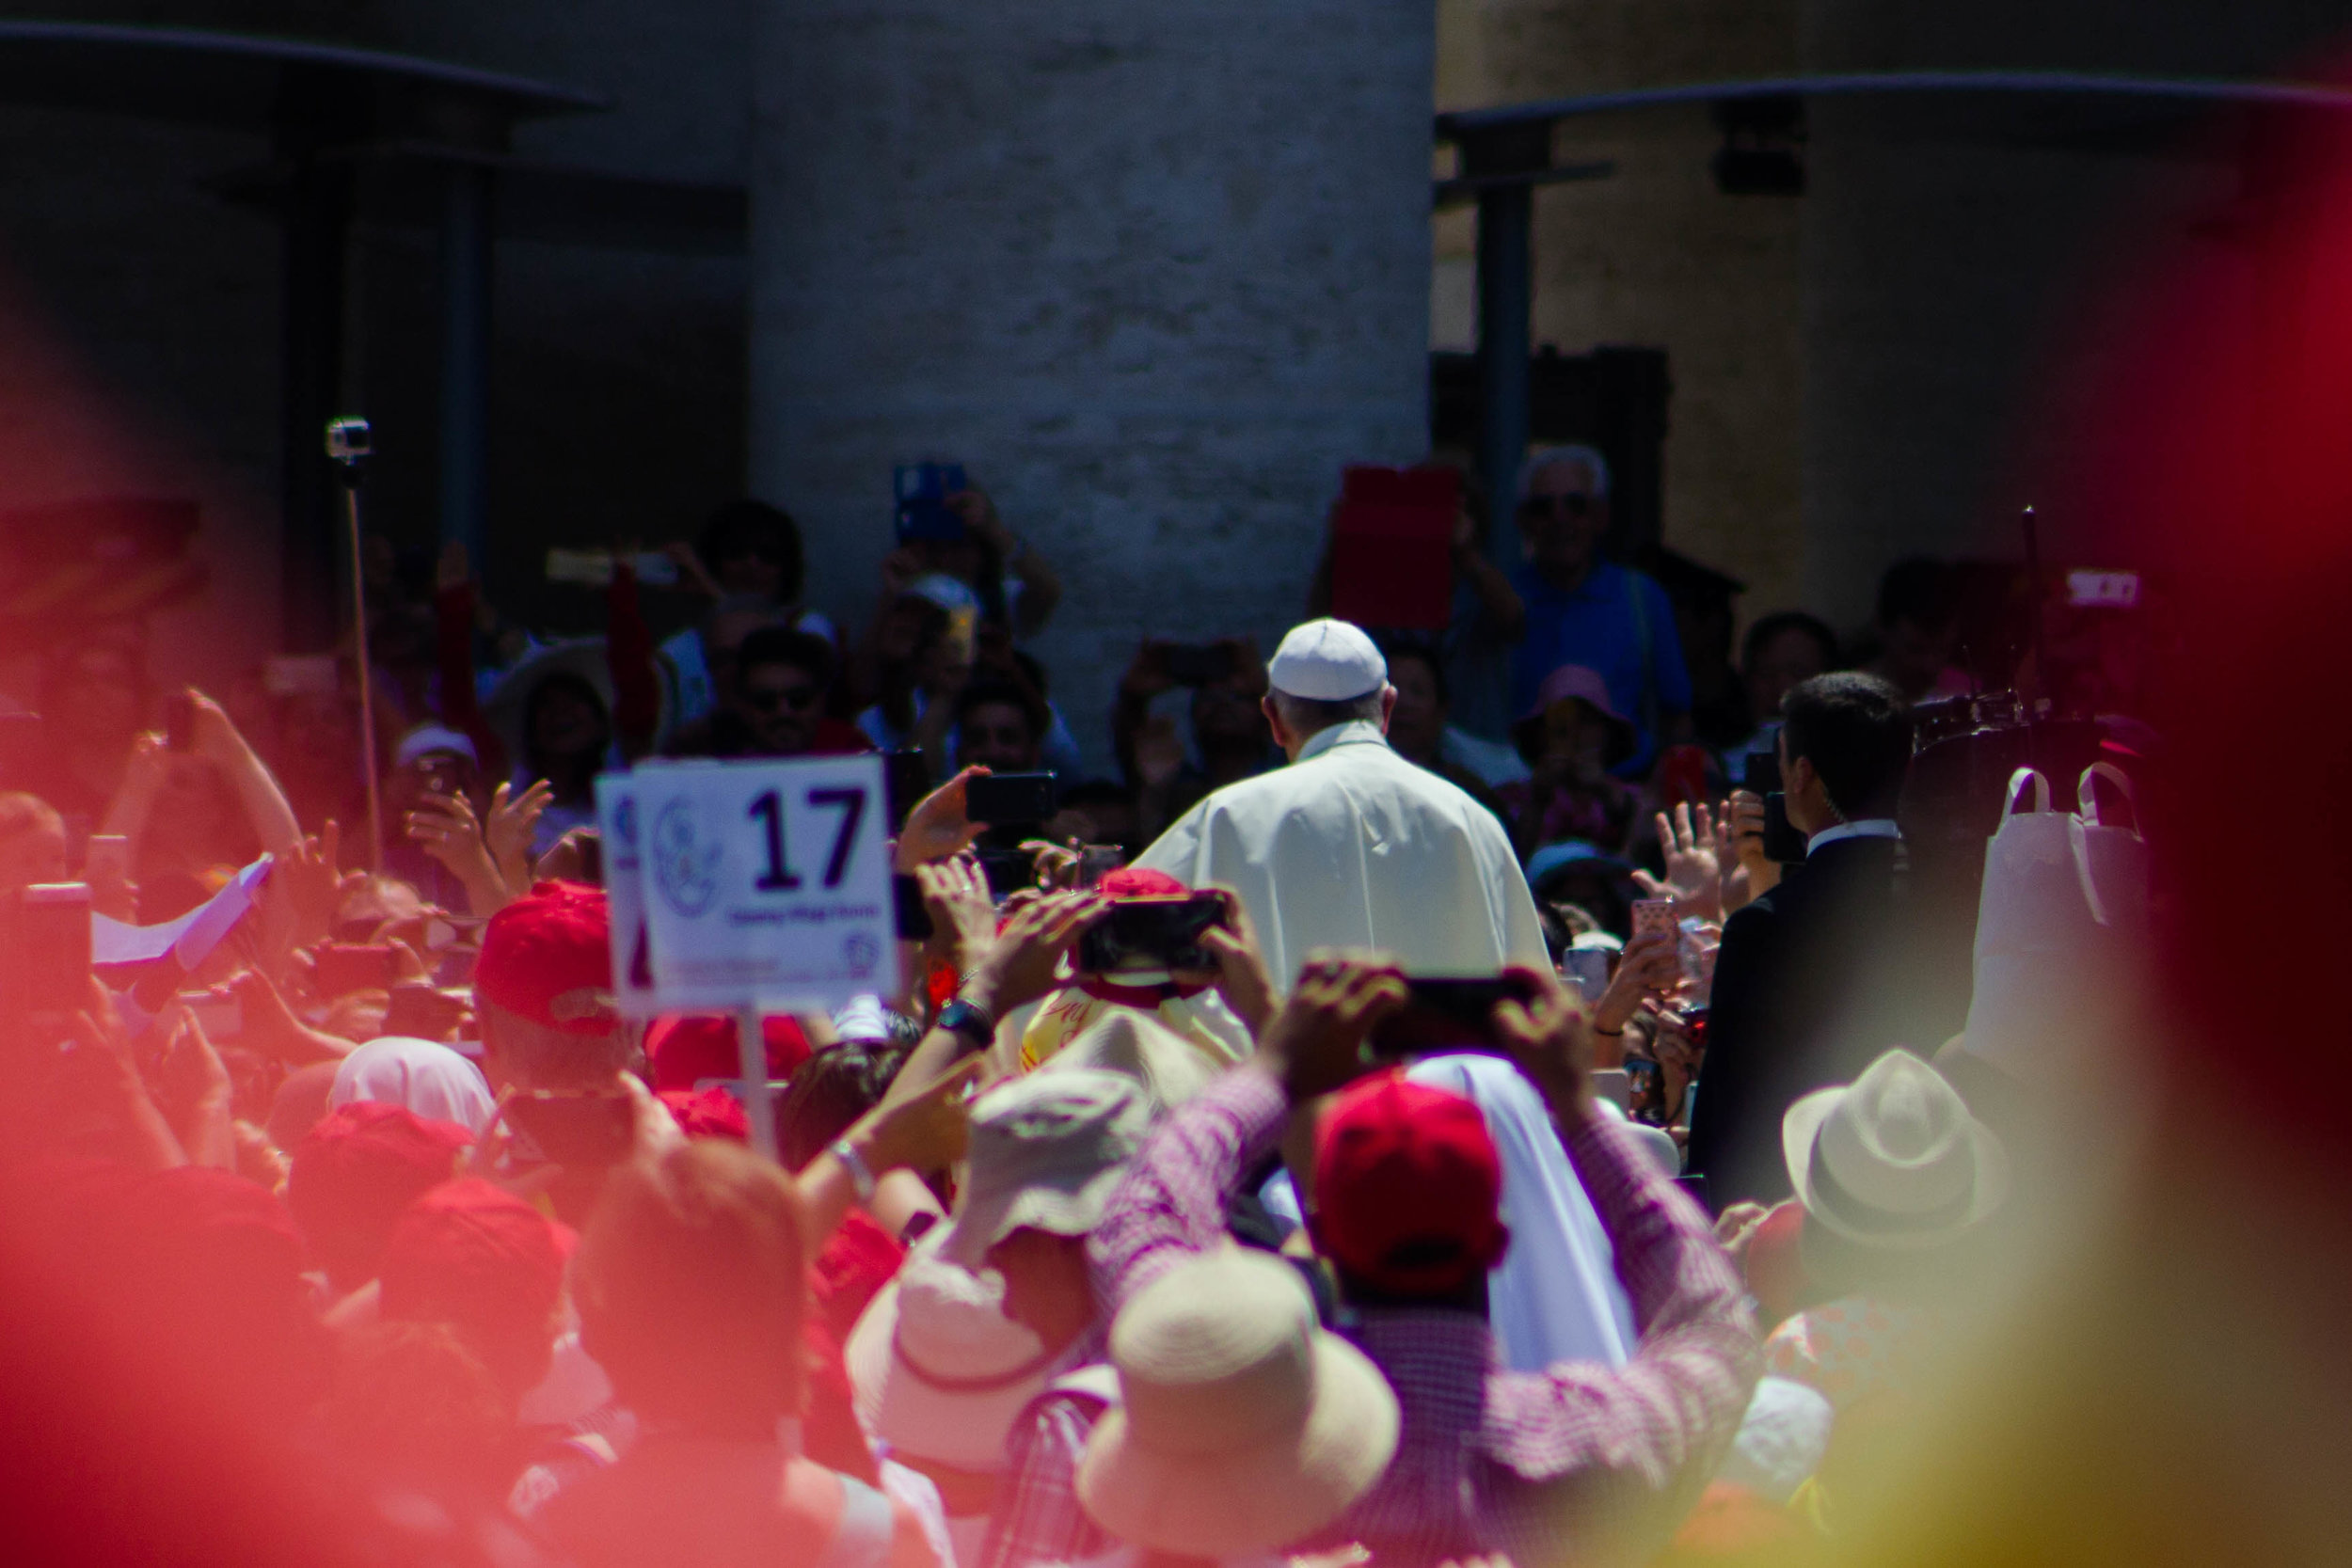 Pope Francis greets the crowd in St. Peter's Square on Pentecost Sunday | Photo by Bernadette Berdychowski